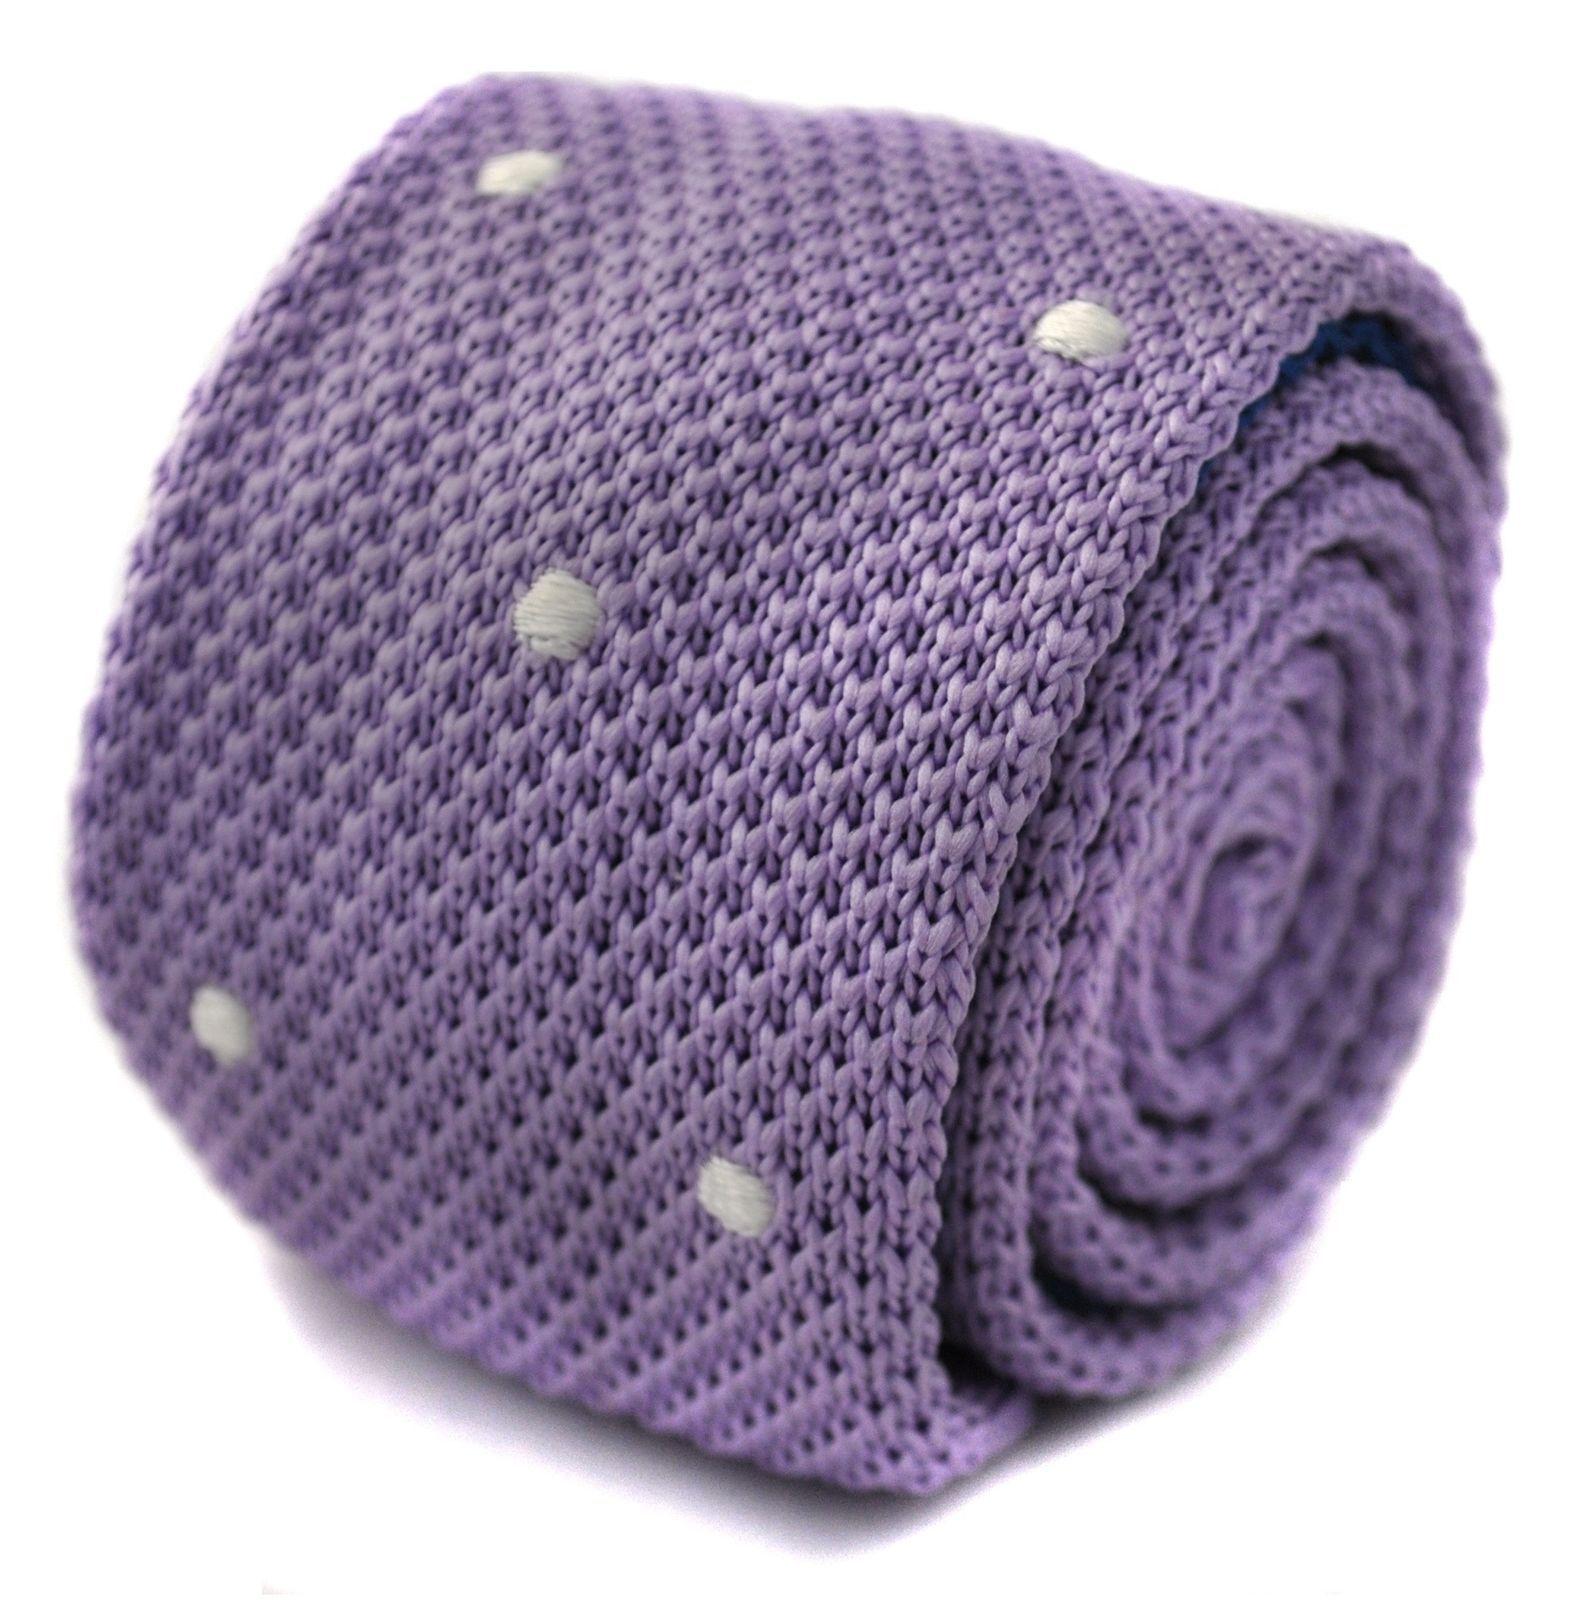 Frederick Thomas knitted lilac and white spotted tie